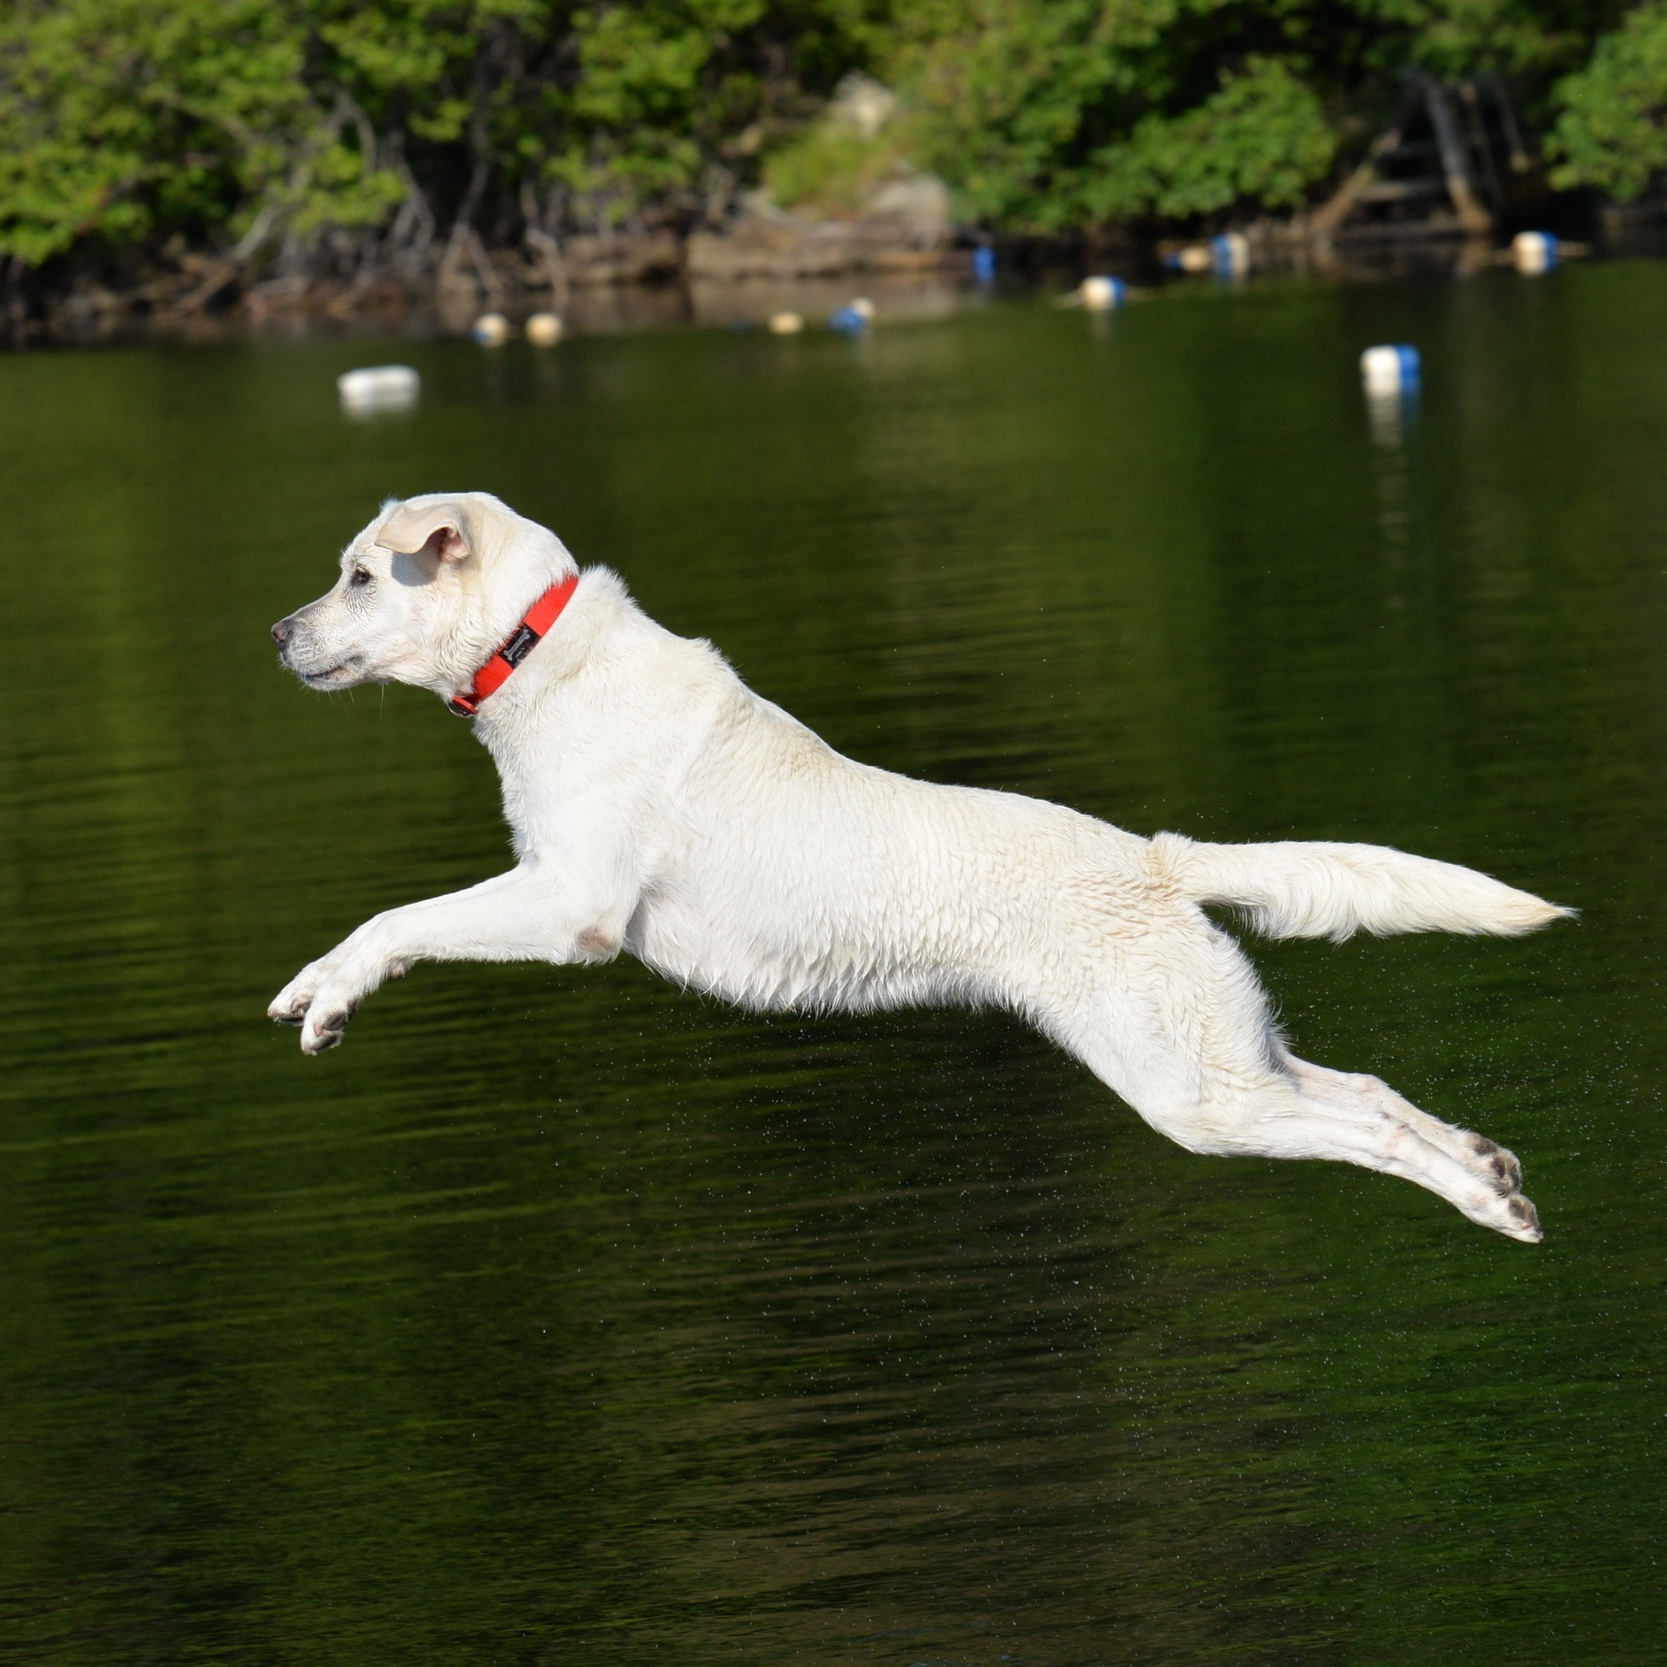 Dock Diving - In dock diving, dogs race down a dock then fly off the end and into the water. Distance is the goal. Dock jumping isn't just for big retrievers — if your dog loves water and loves to jump, definitely give it a try! This is always an extremely popular part of Camp Unleashed and great for amazing flying photo ops! If your dog has never done it, we specialize in teaching beginners!